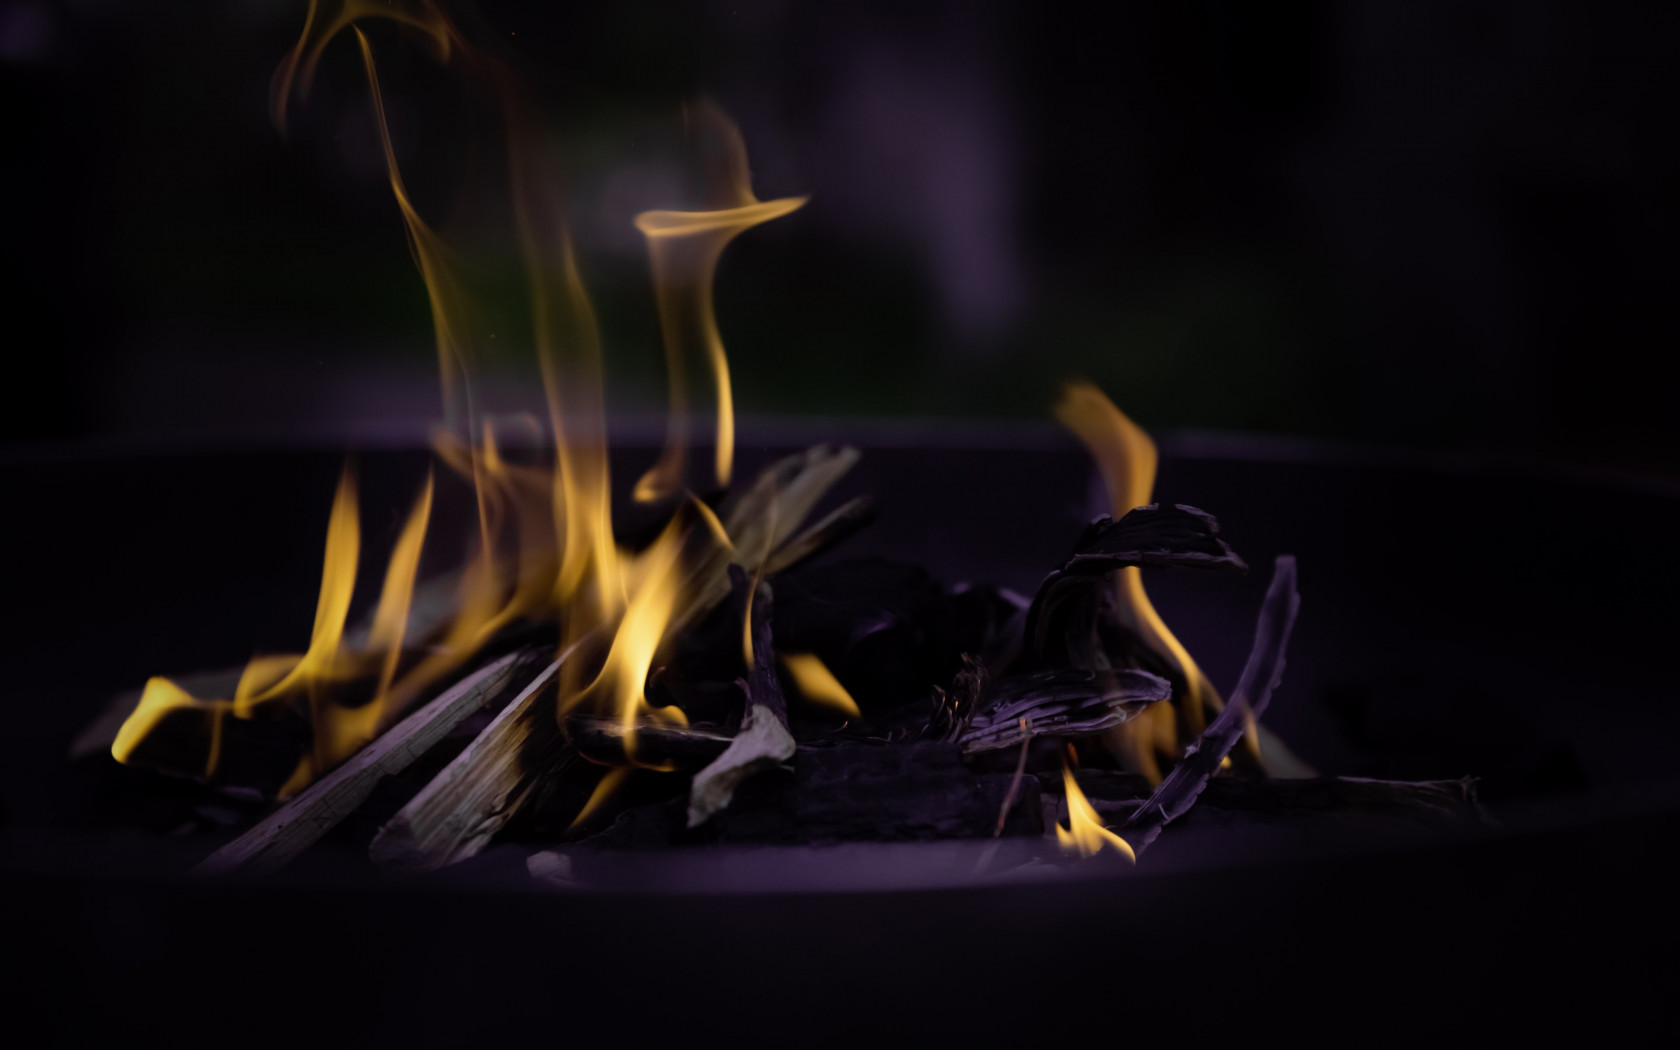 Fire, flames, hot wallpaper 1680x1050